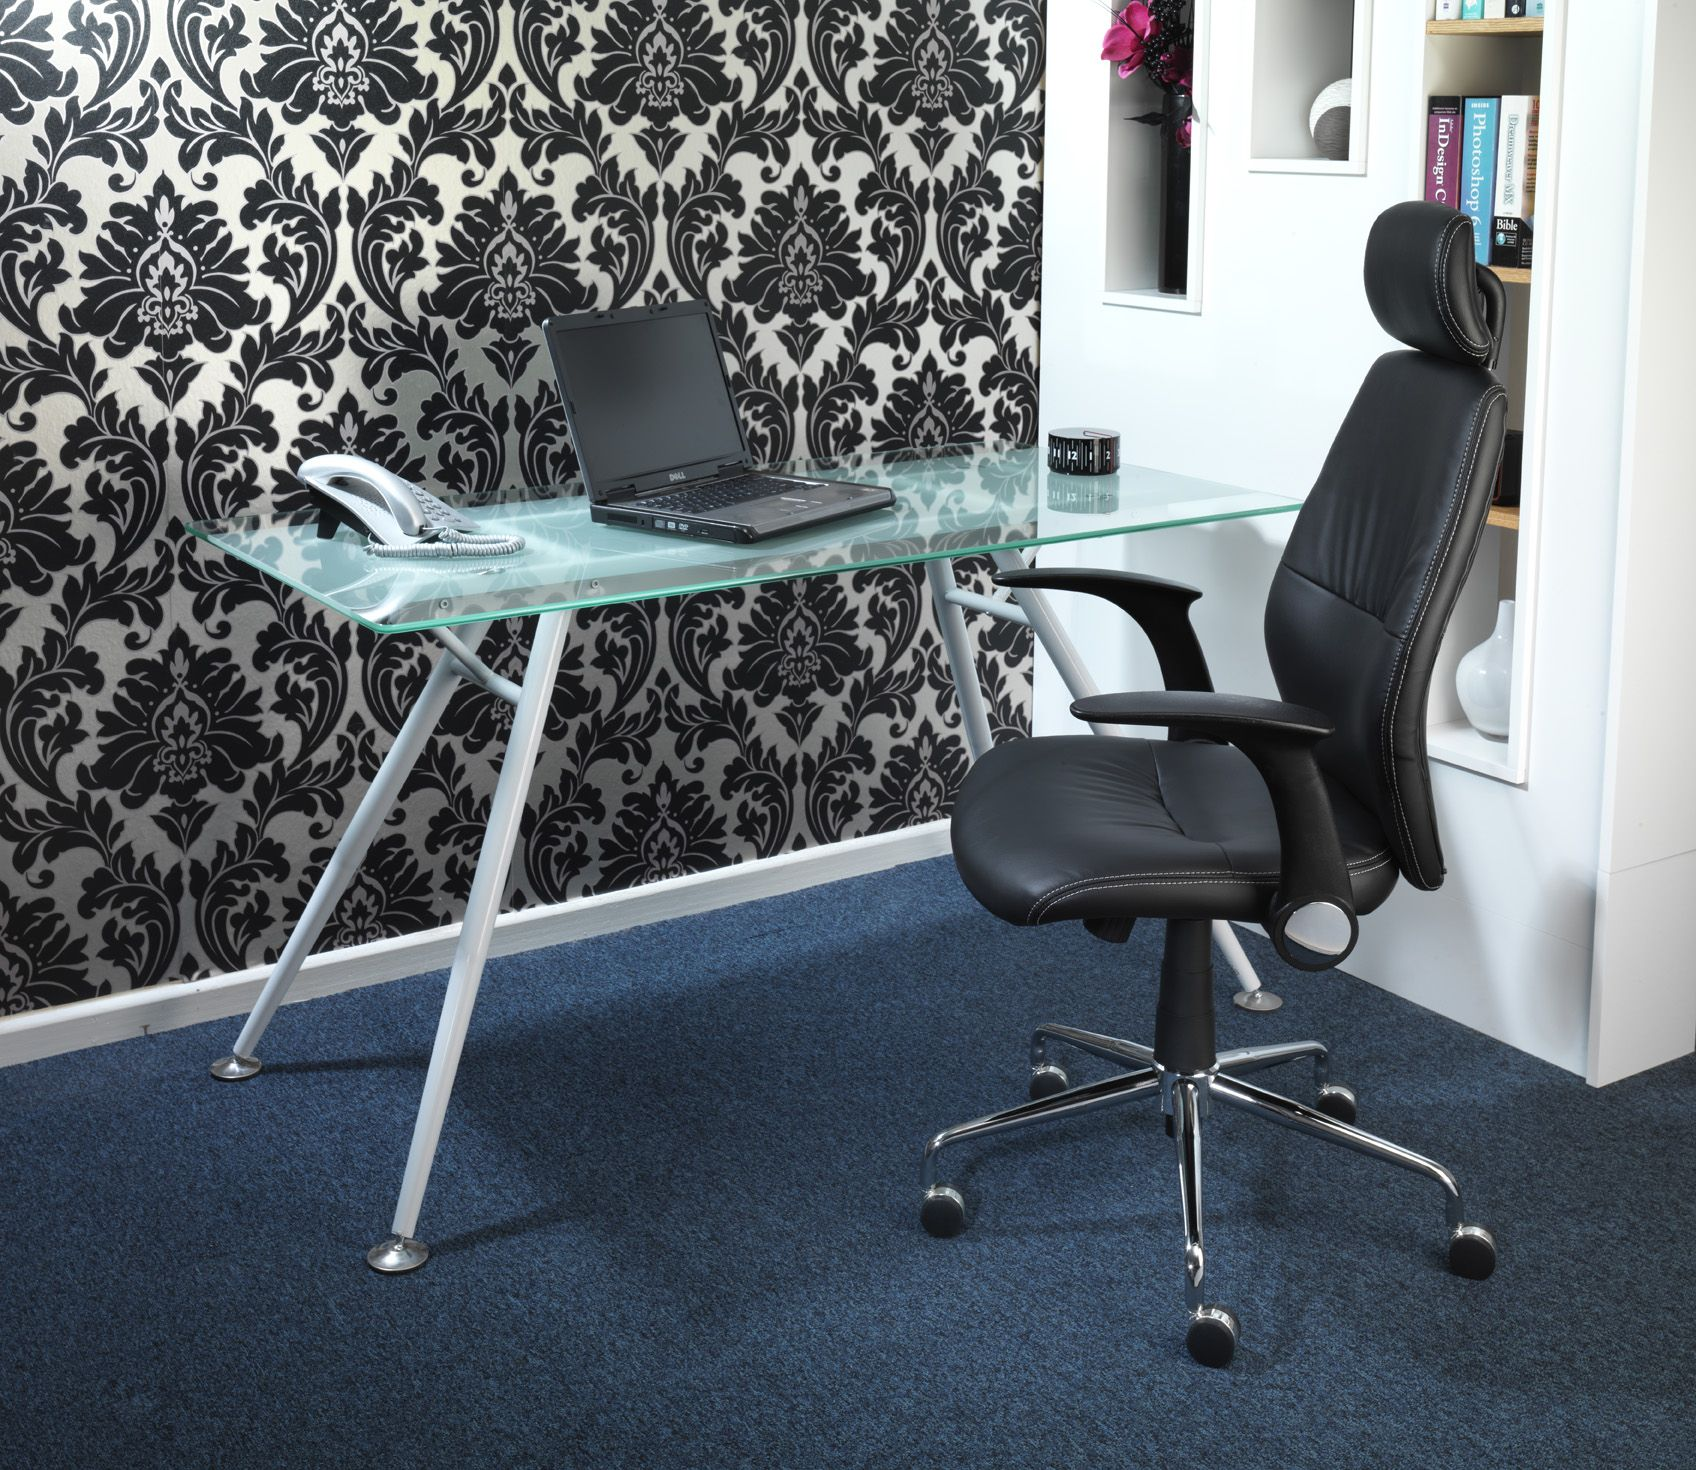 Fabulous Stylish Office Chair With Flip Back Arms Space Saving Inzonedesignstudio Interior Chair Design Inzonedesignstudiocom